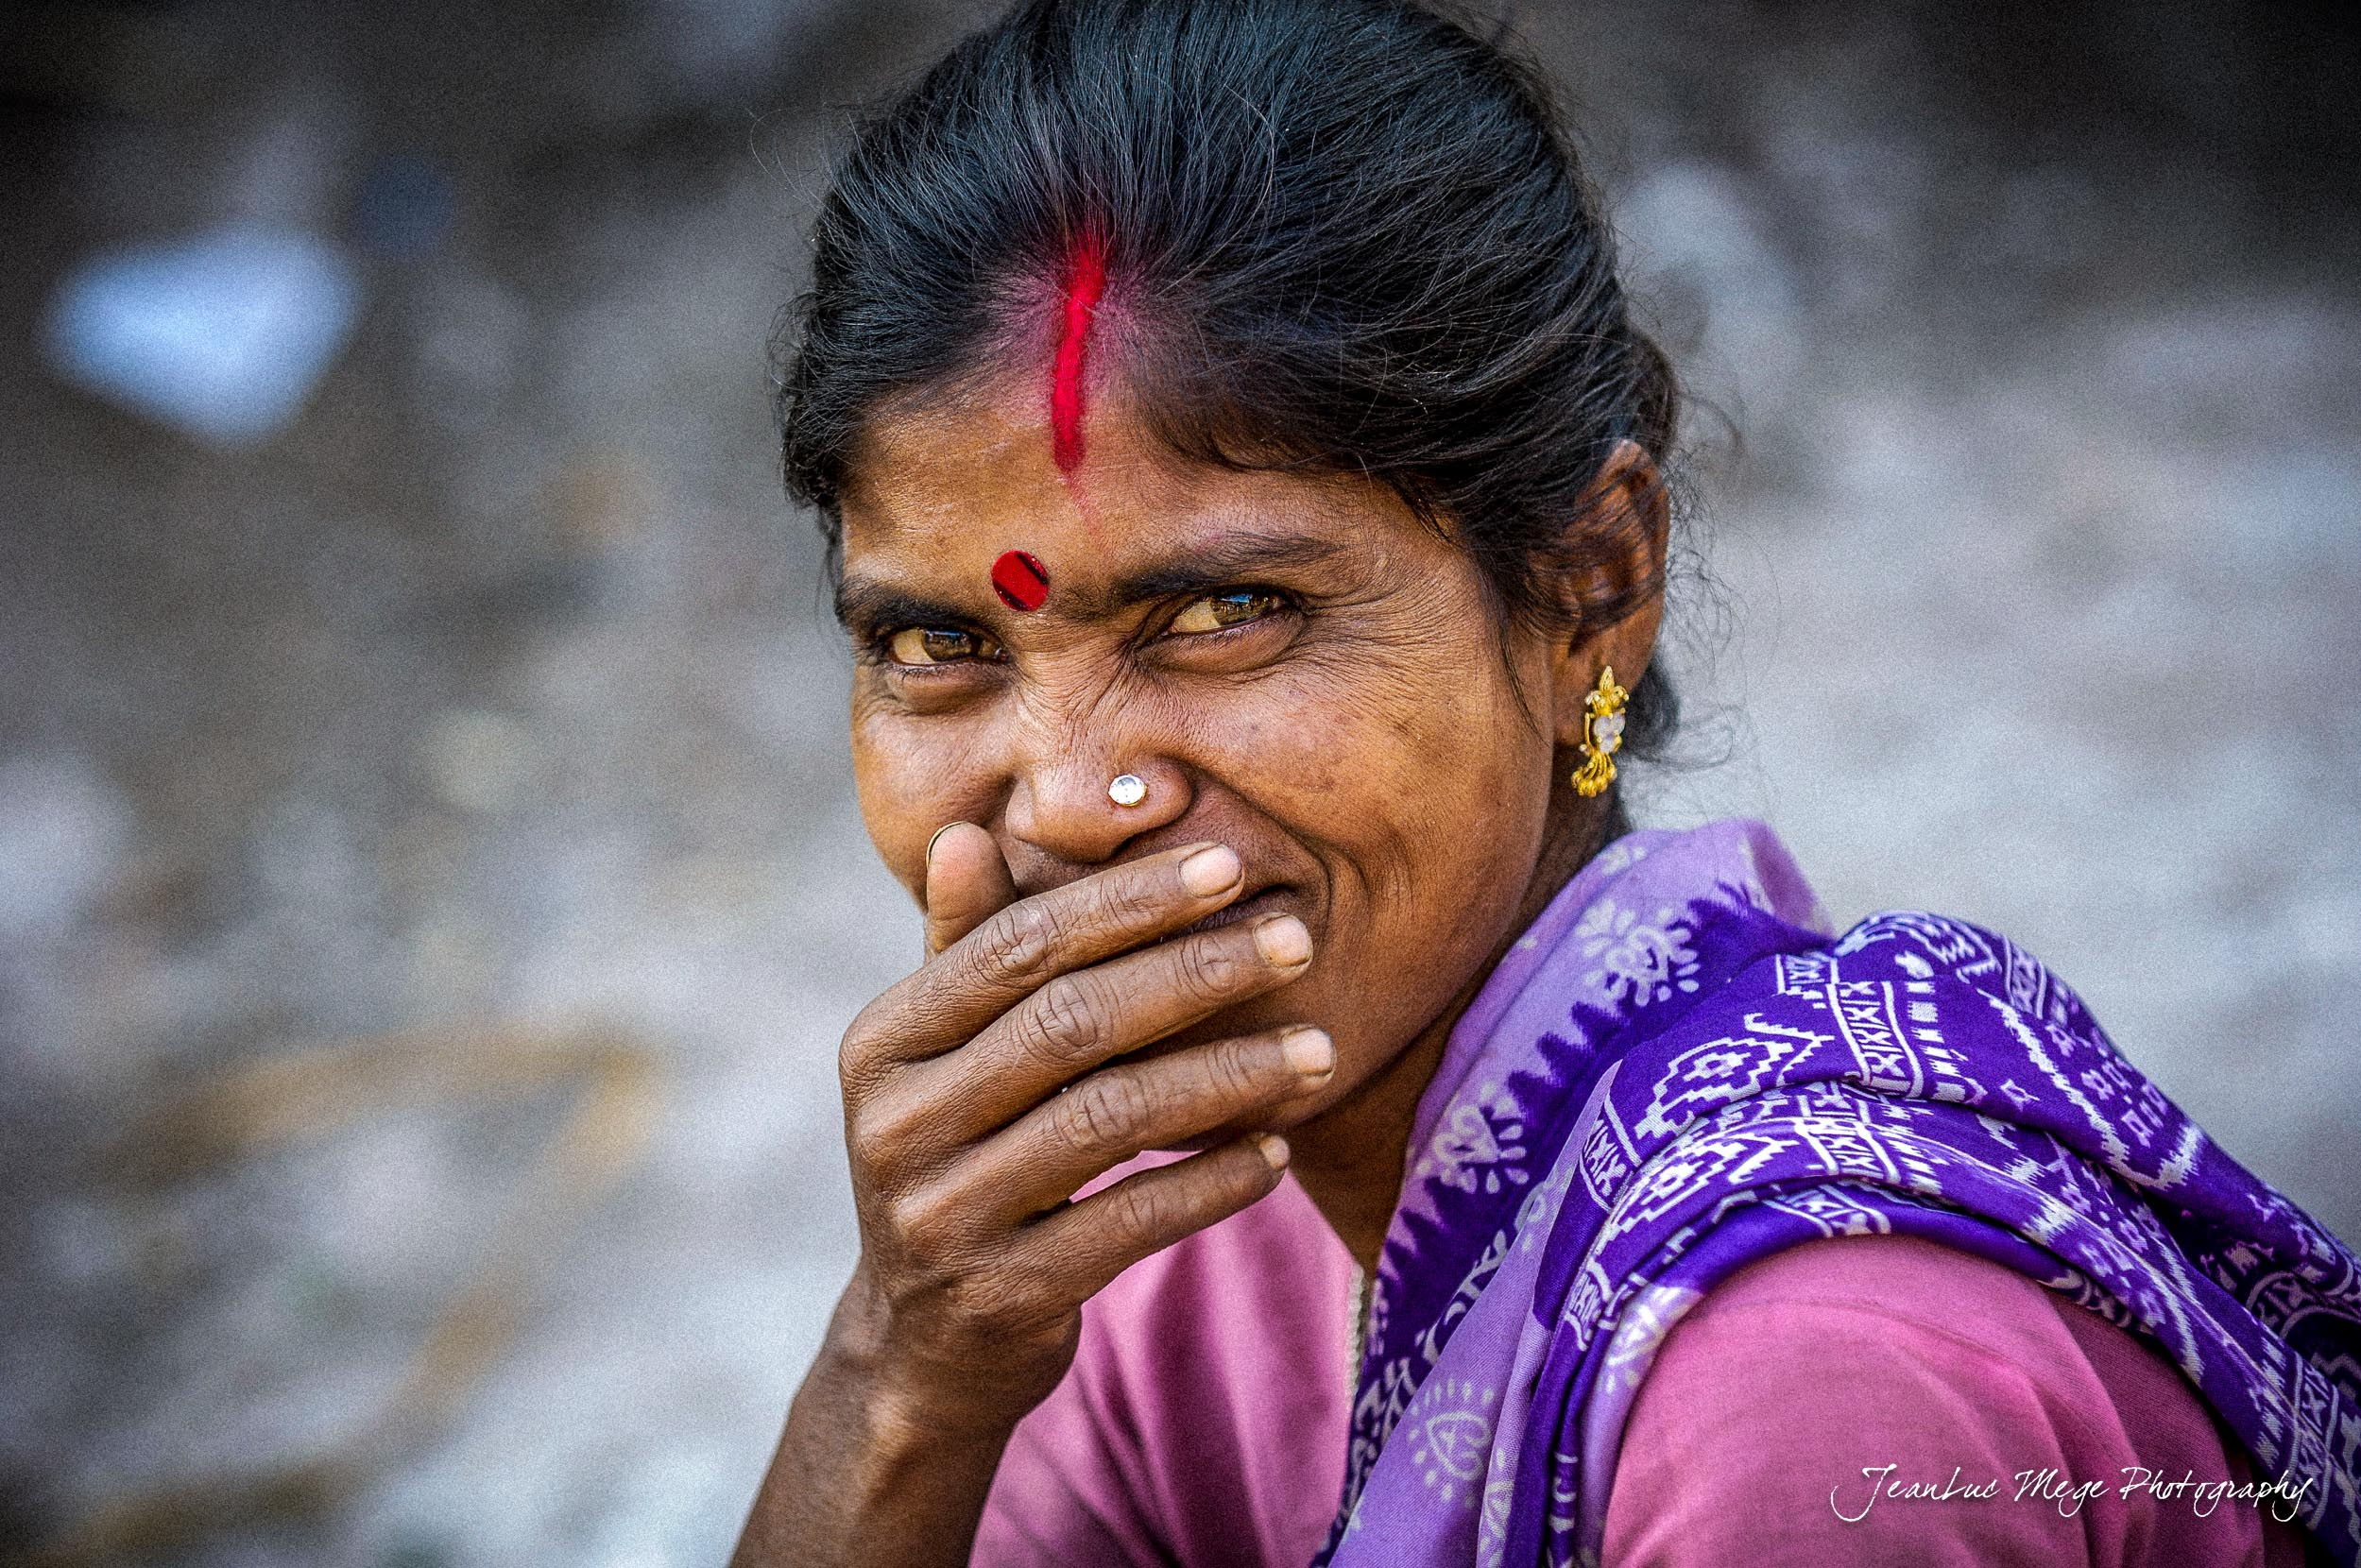 Streets of India J1©jeanlucmege-6029.jpg